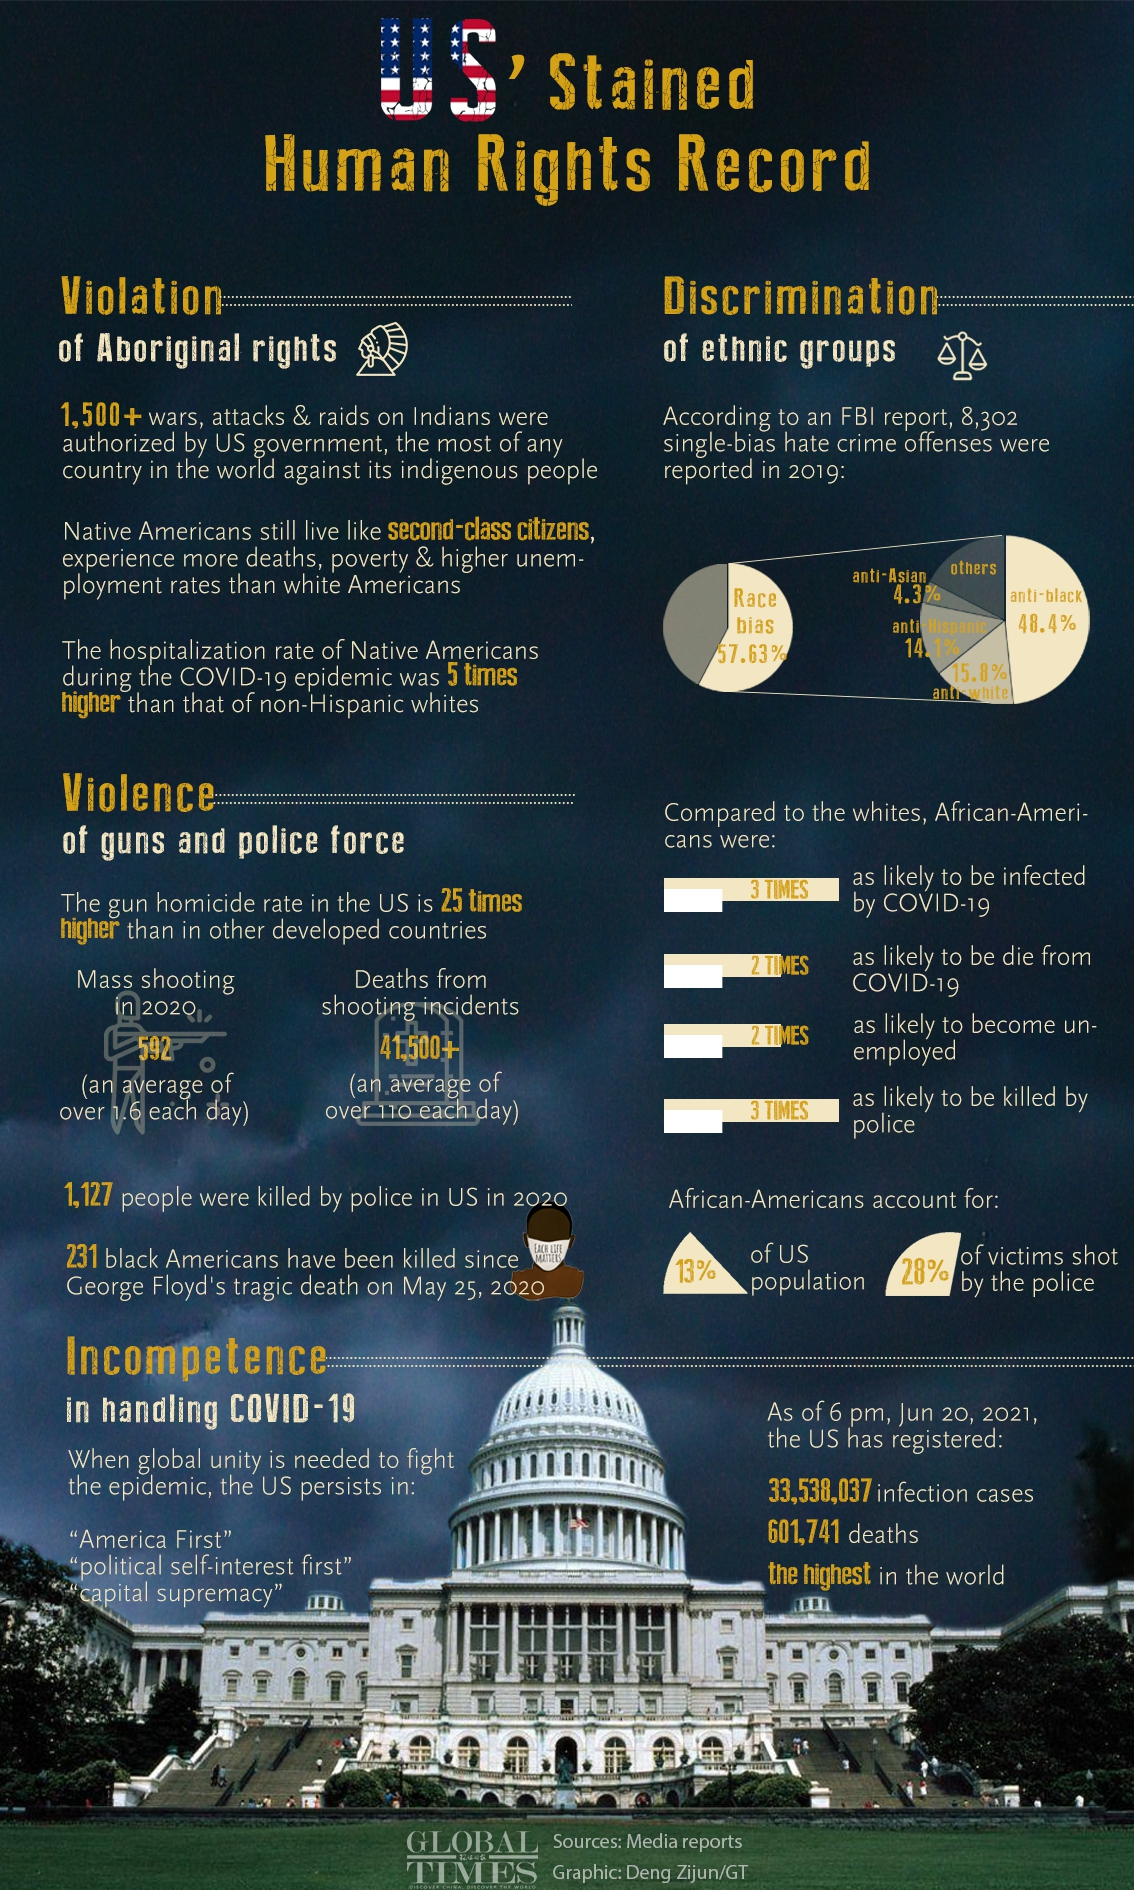 US' Stained Human Rights Record Graphic: Deng Zijun/GT